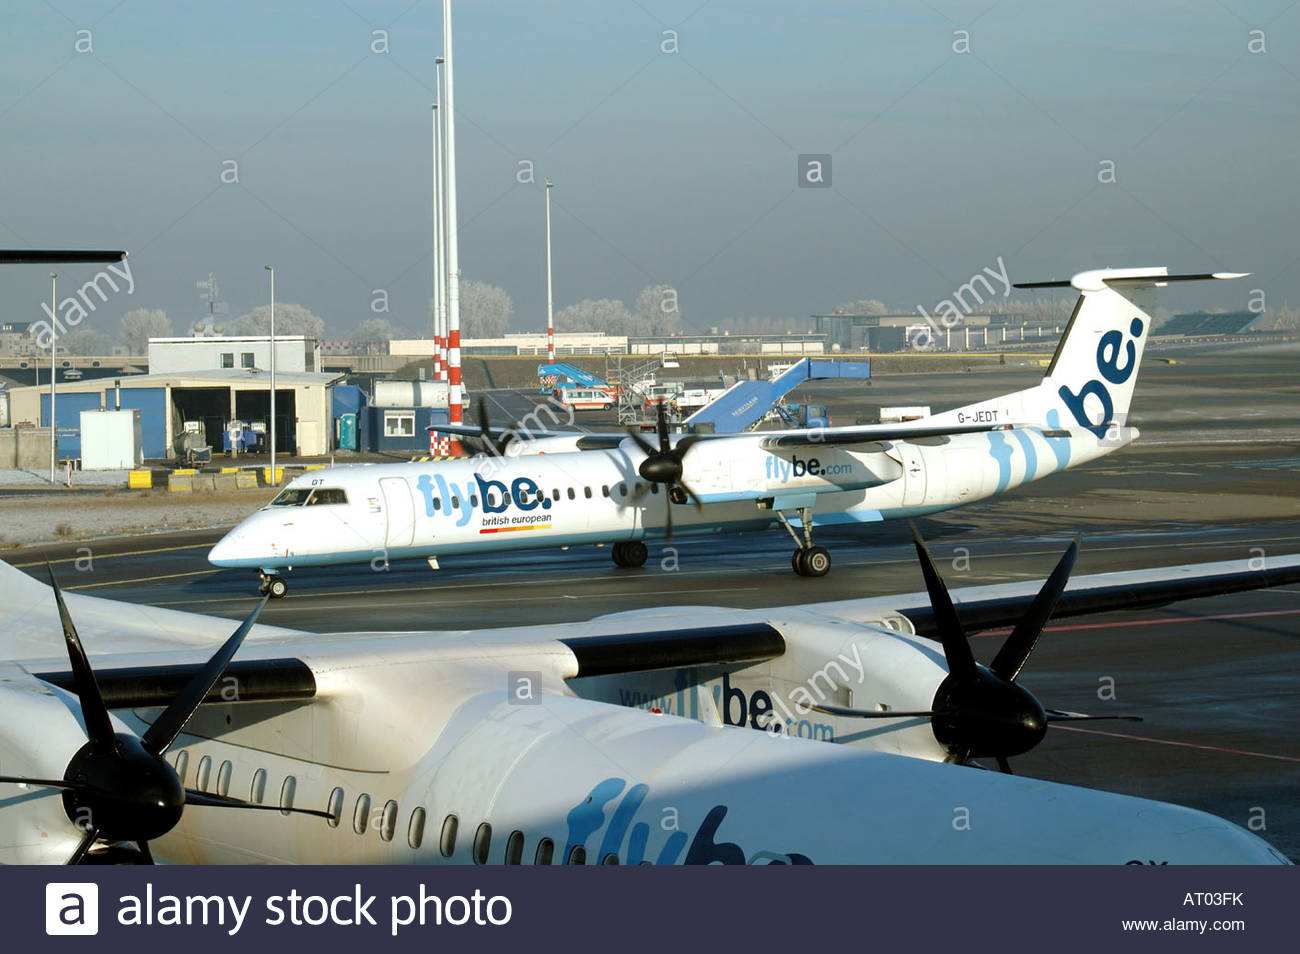 Schiphol The Netherlands Two Flybe Dash 8 pass eachover on the apron. - Stock Image